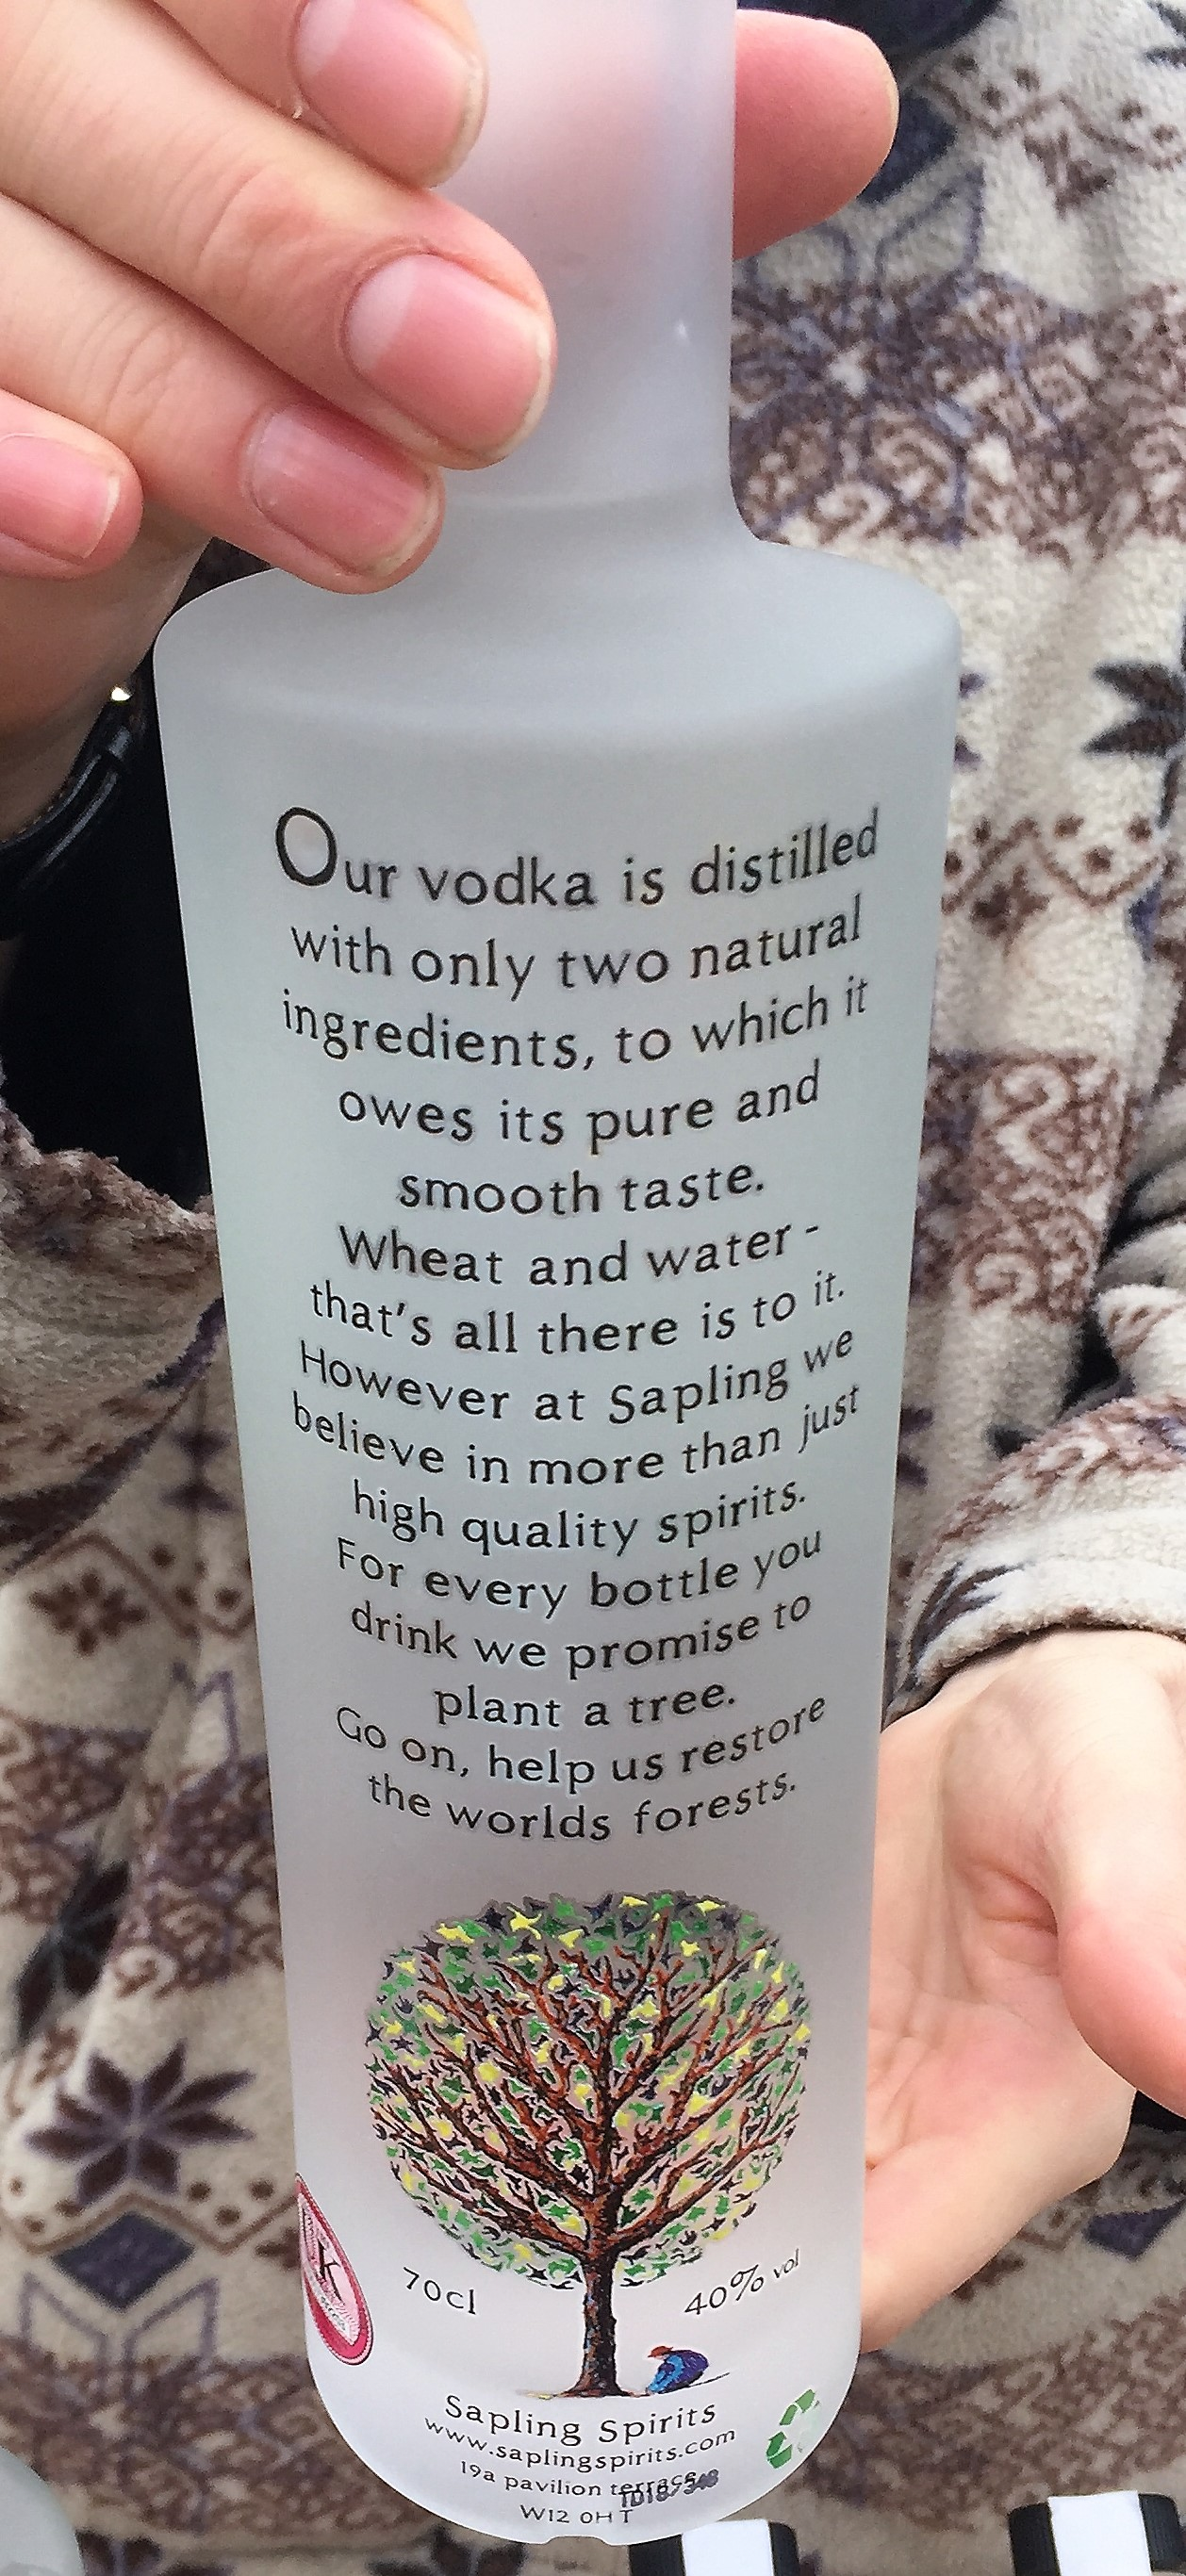 Sapling Spirit's Vodka